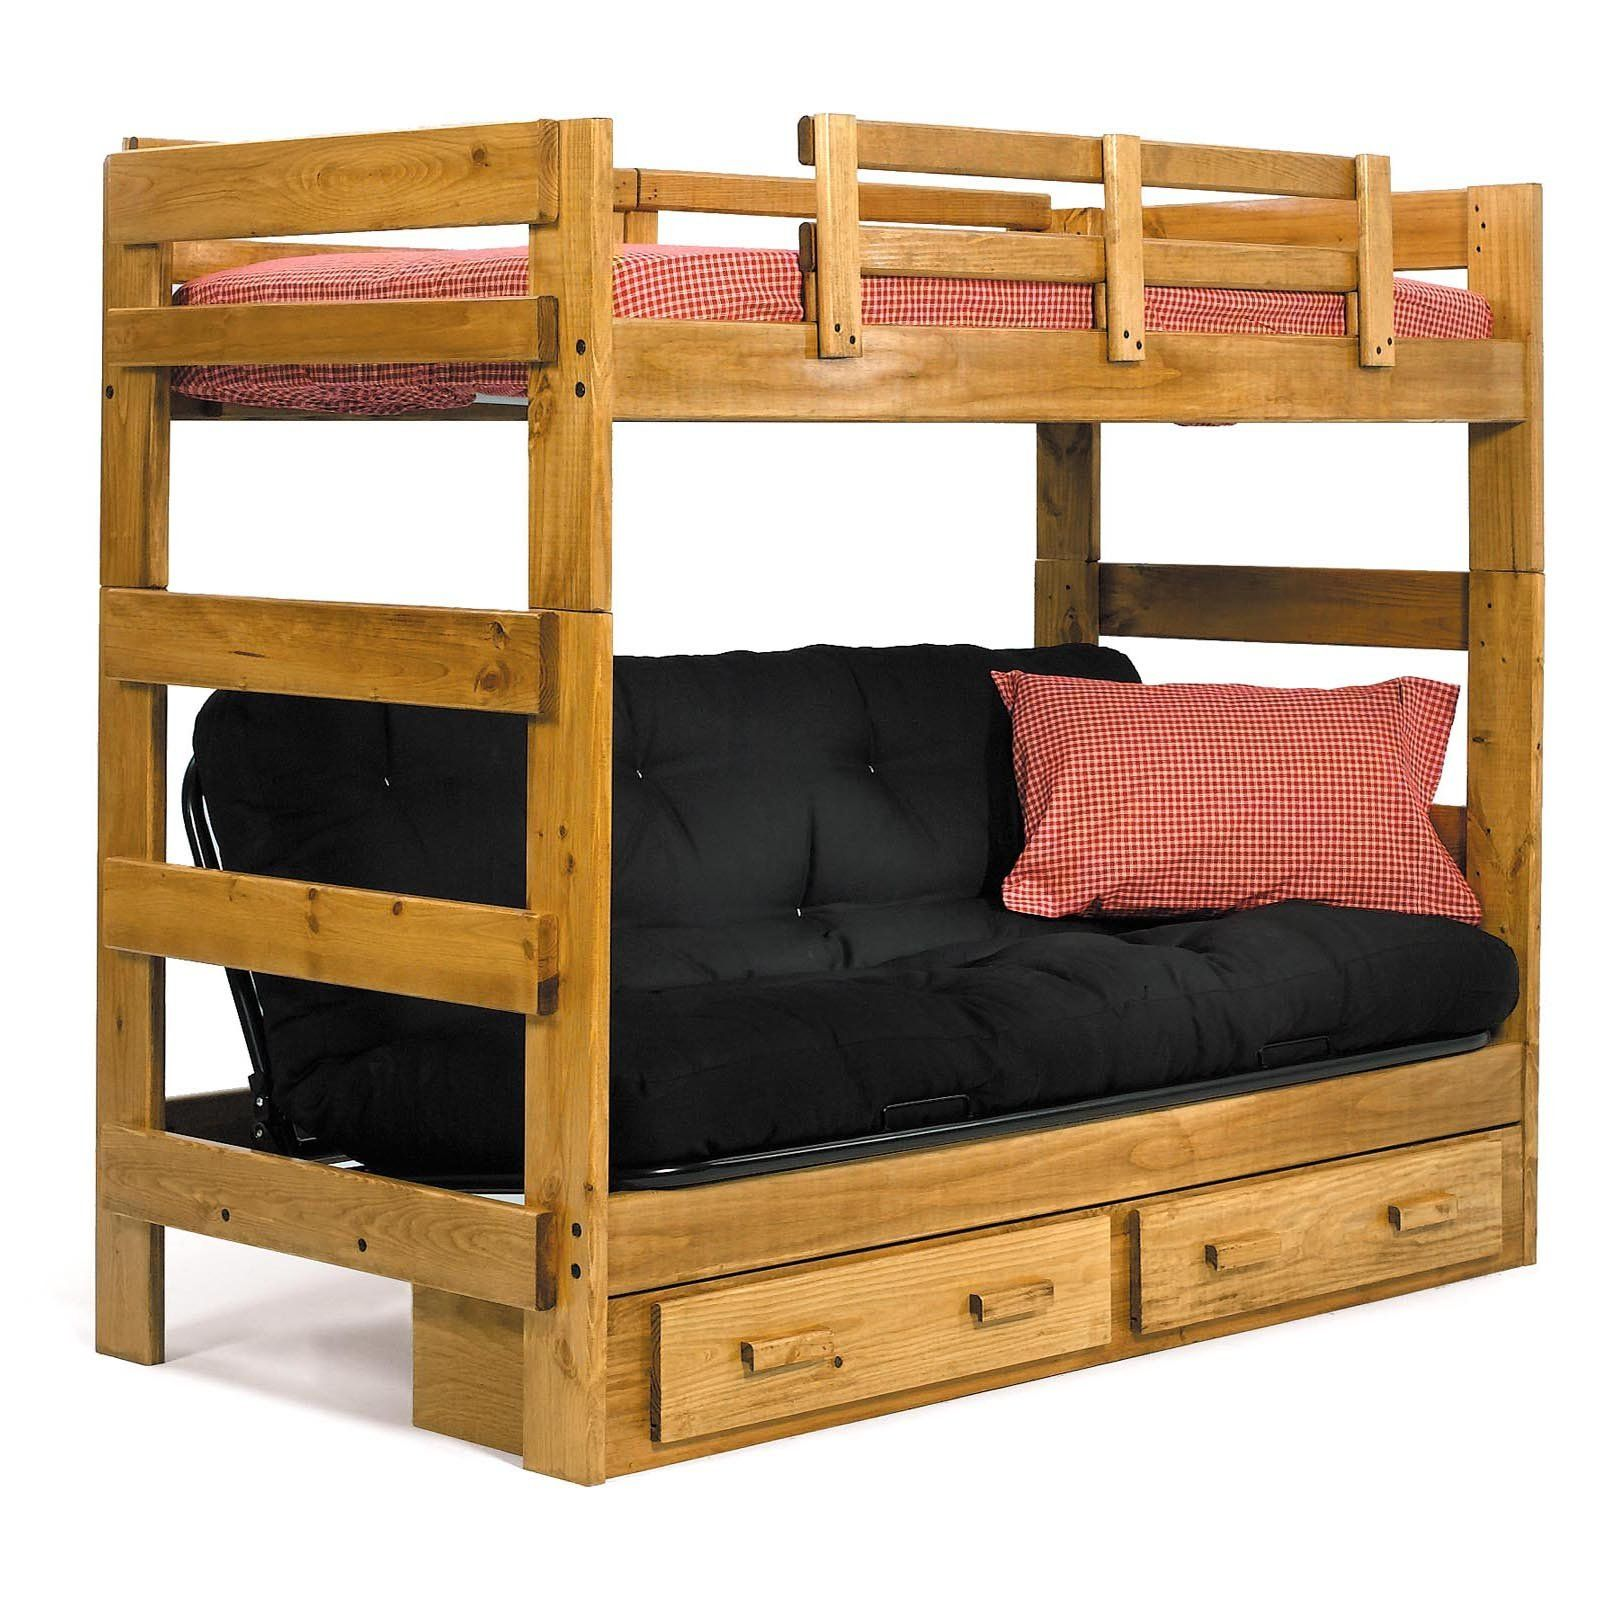 Nice Savannah Twin Over Futon Bunk Bed | Www.simplybunkbeds.com For Idea. Not